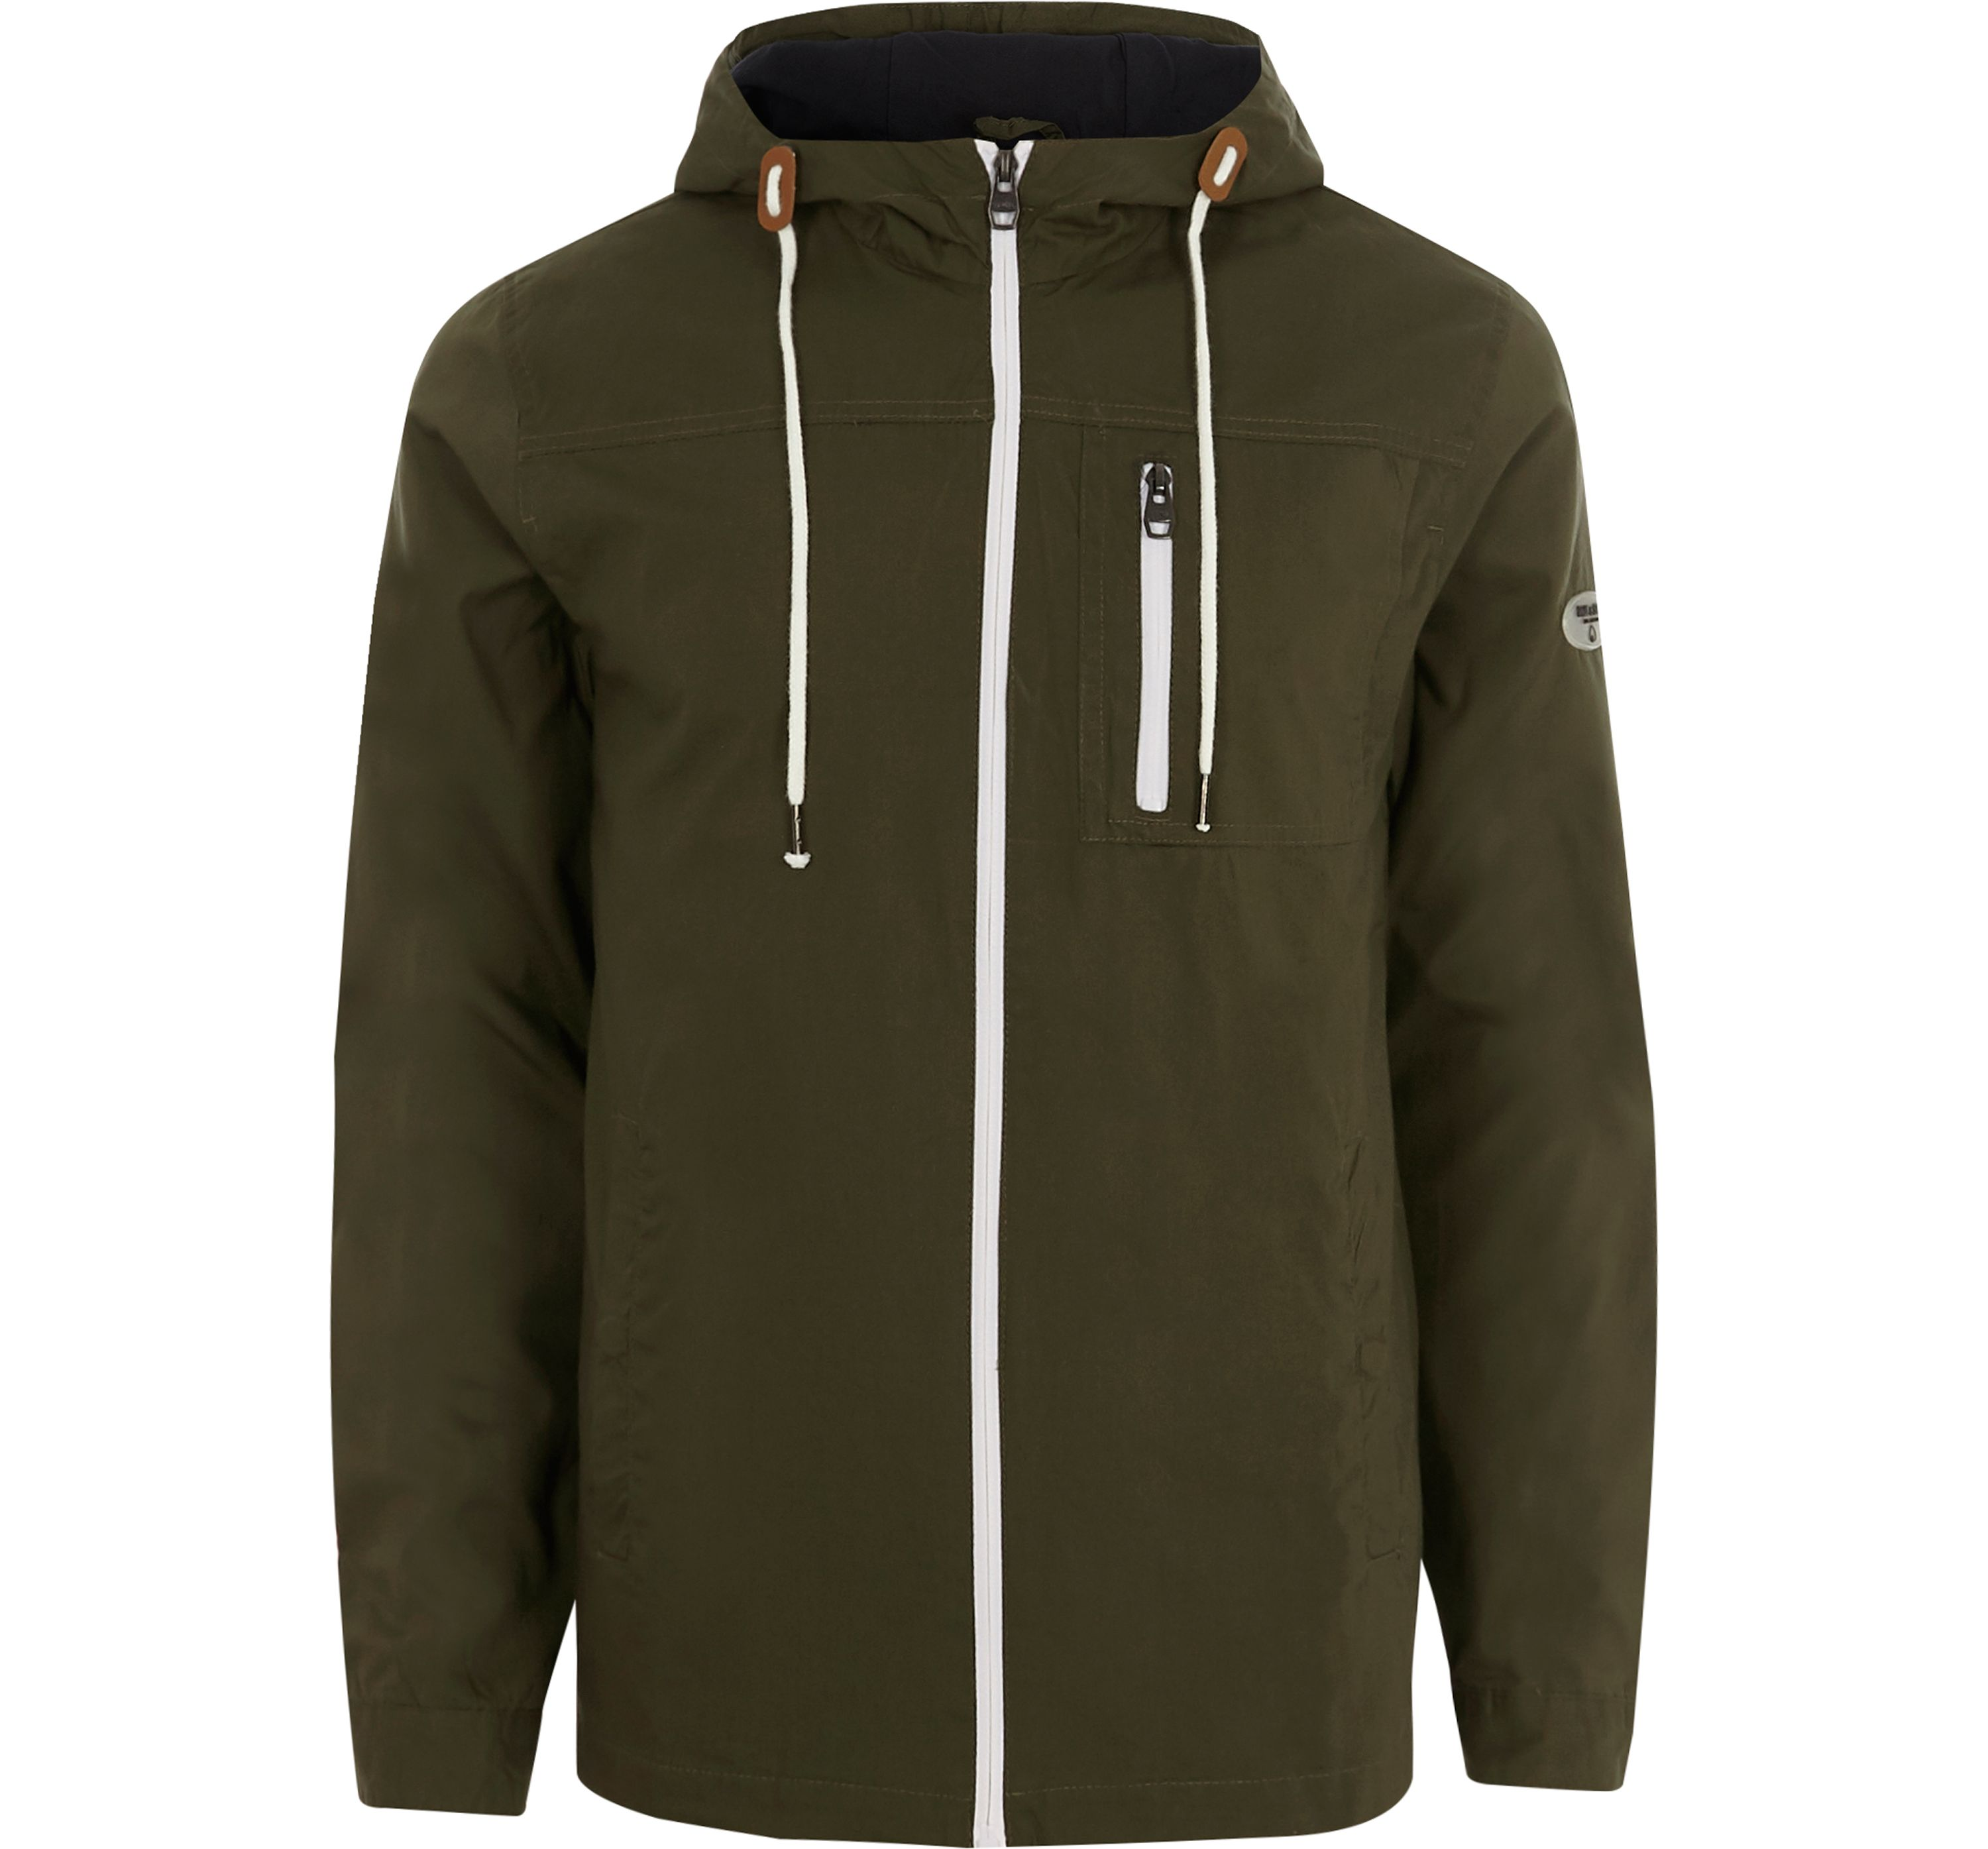 River Island Mens Only and Sons Khaki green hooded jacket